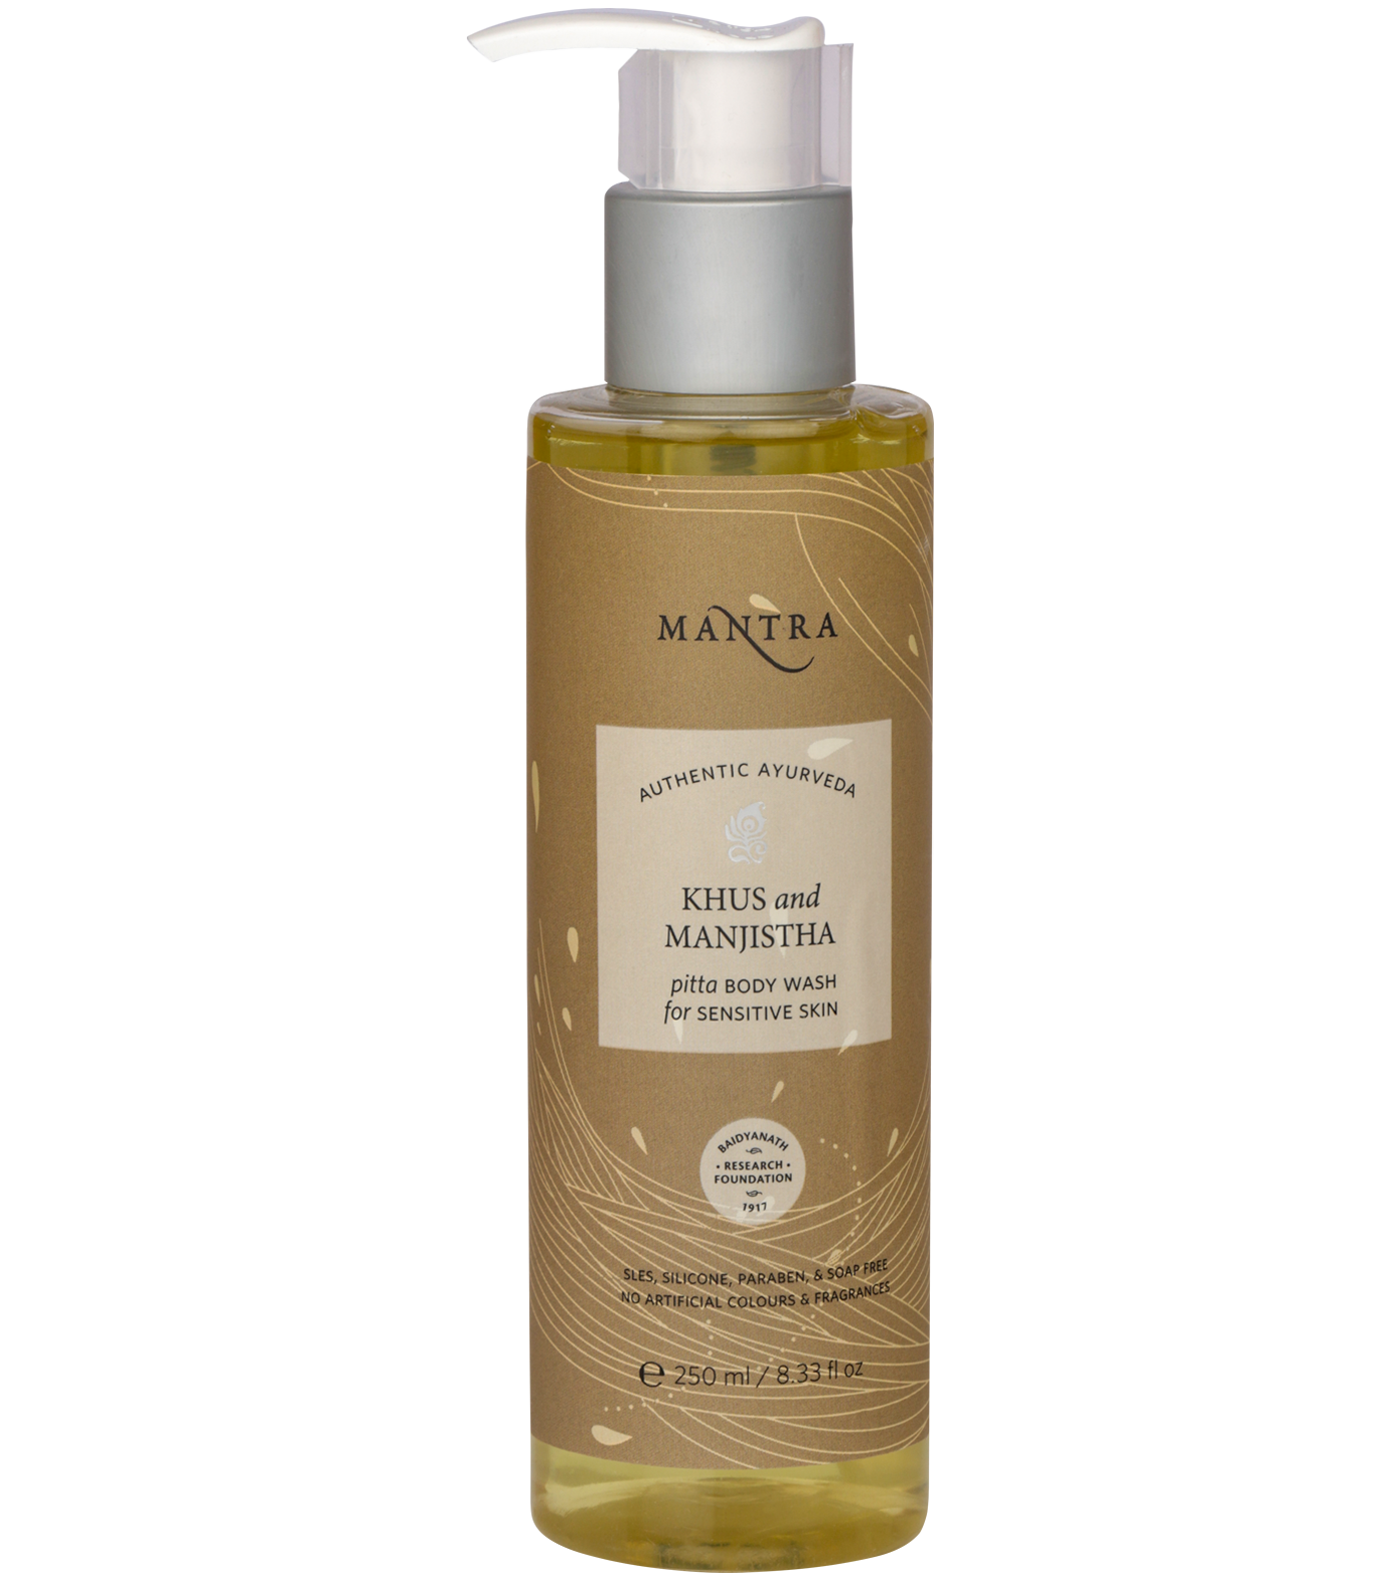 Khus and Manjistha Pitta Body Wash for Sensitive Skin